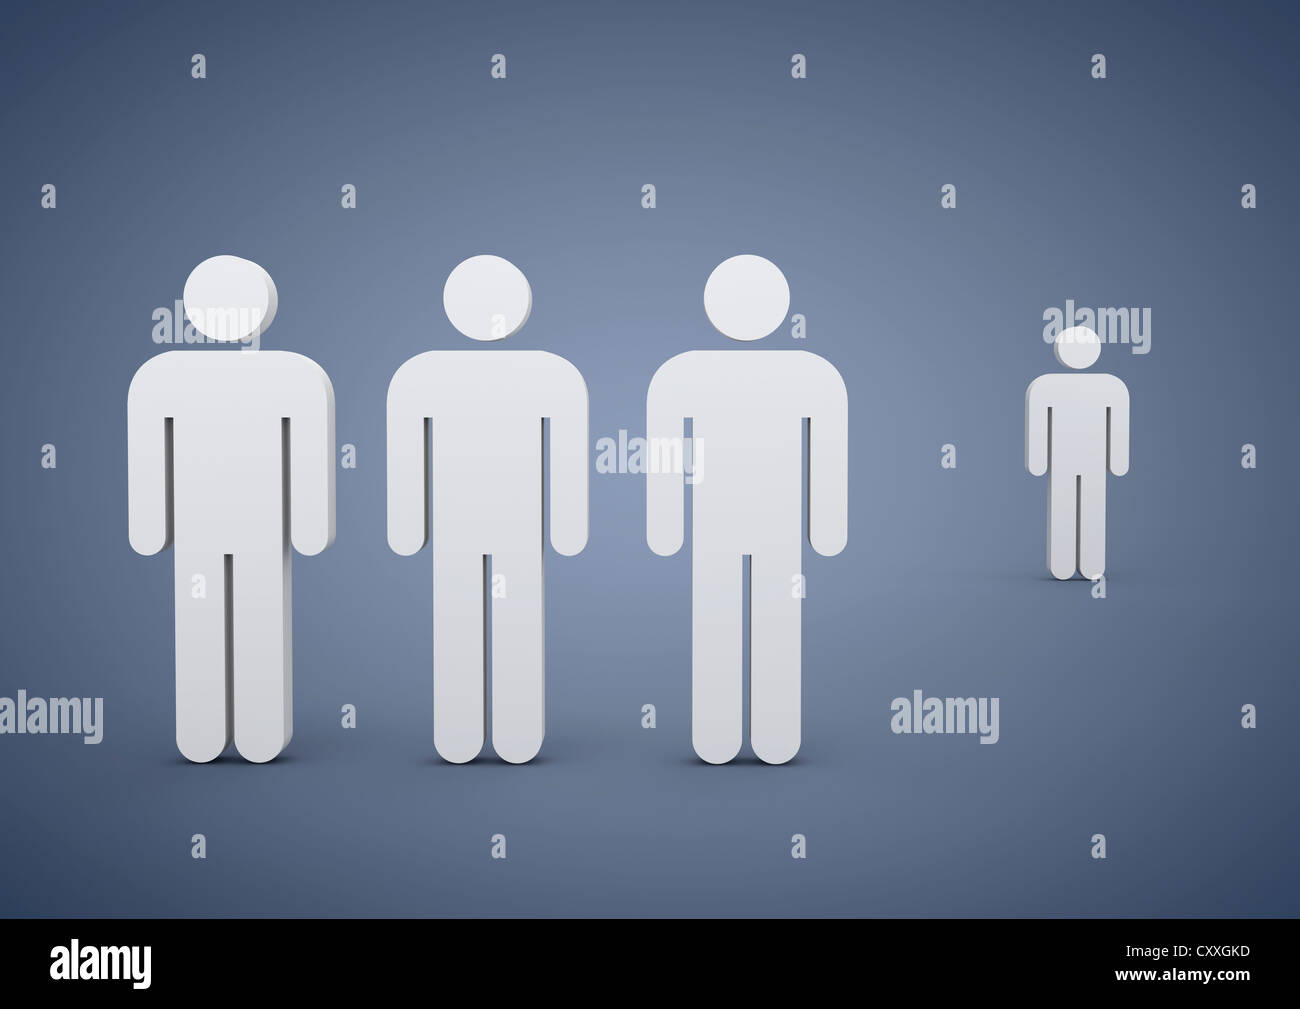 A Group Of Men One Man Standing Apart Symbolic Image For Bullying